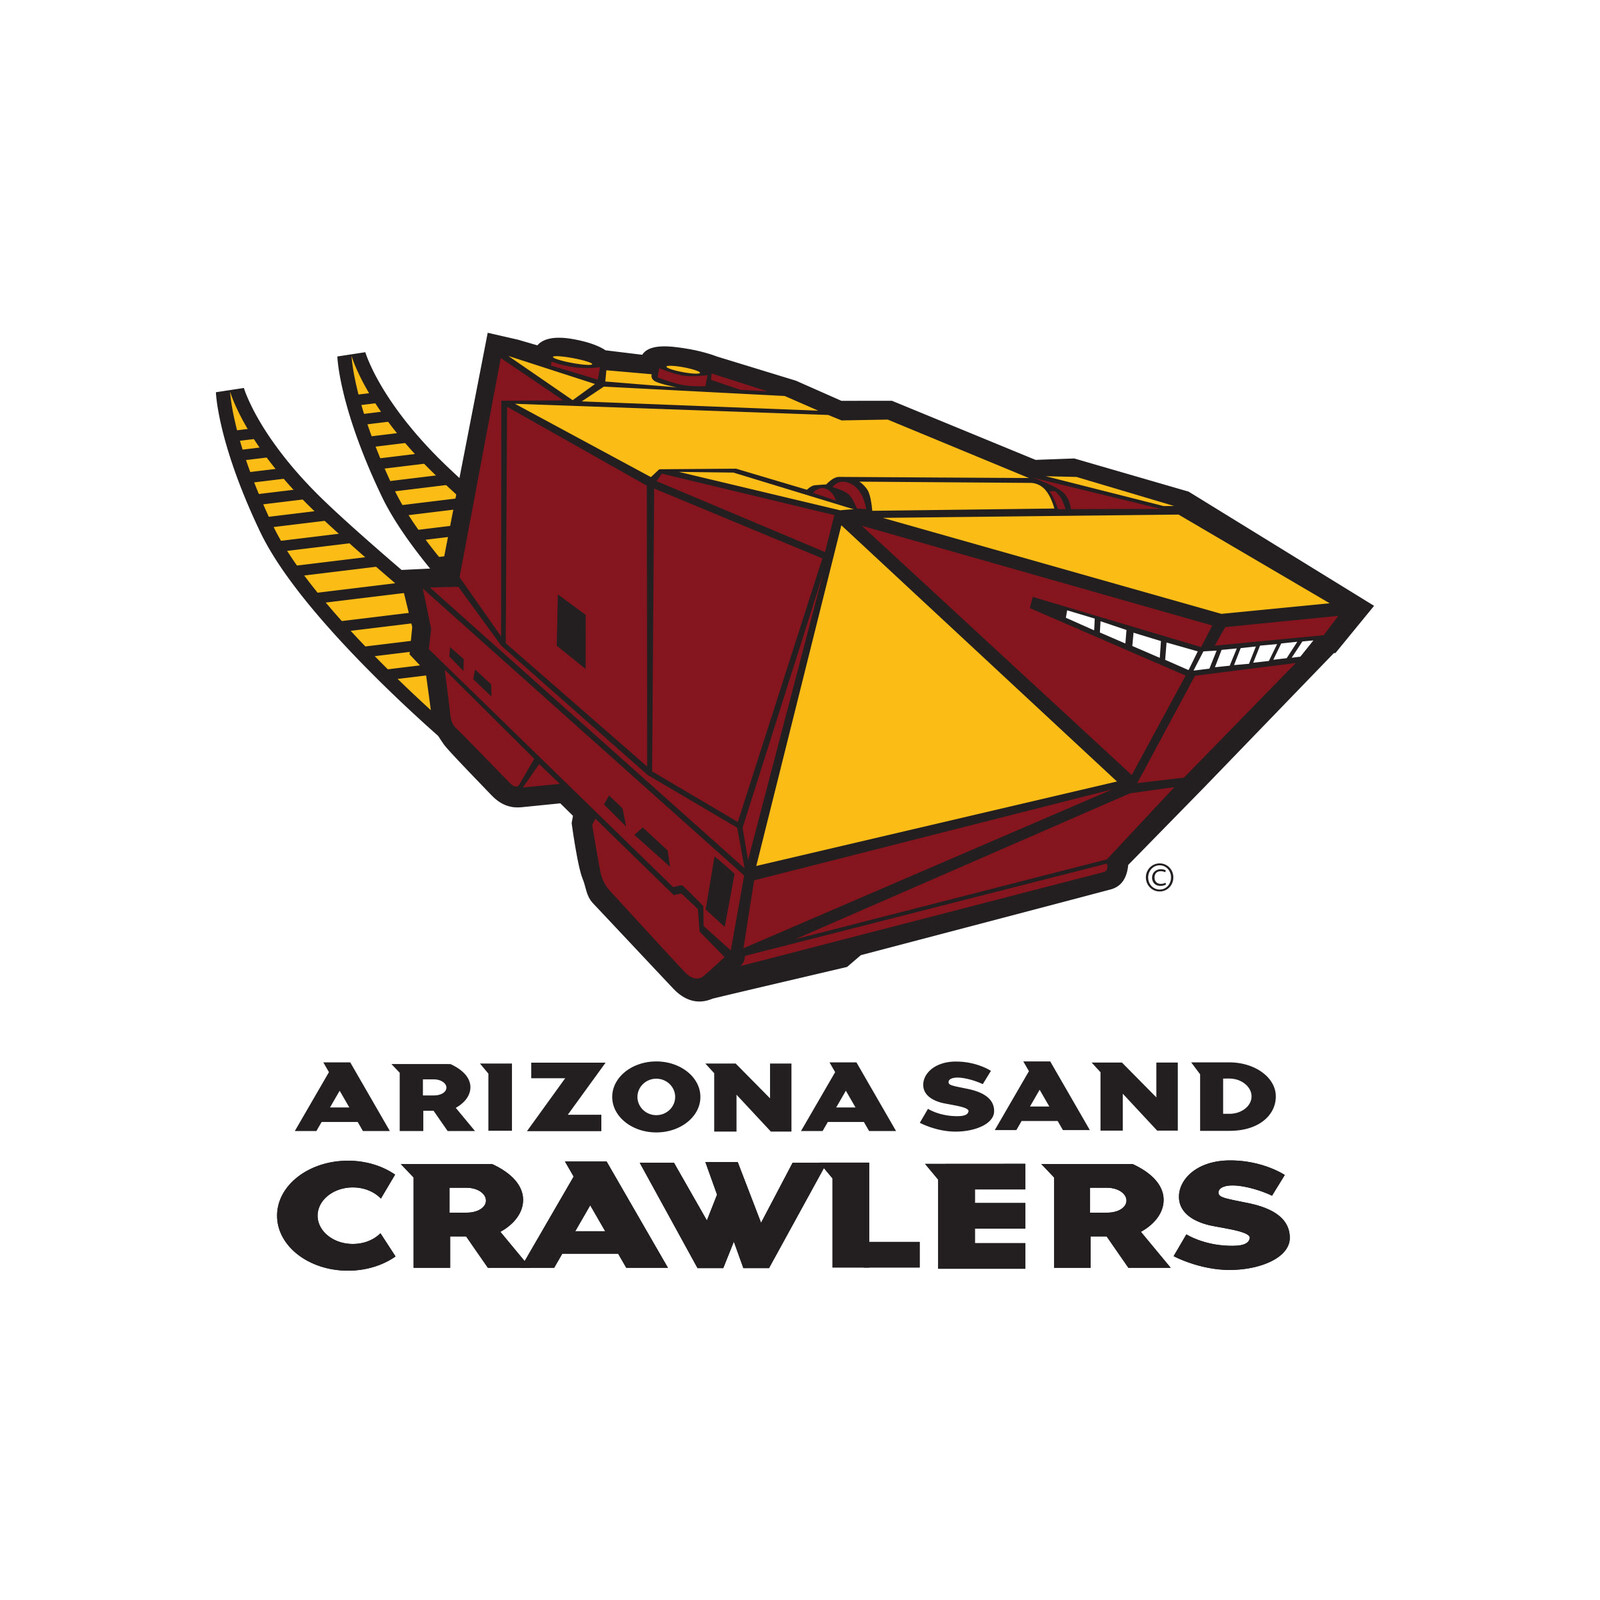 Arizona Sand Crawlers